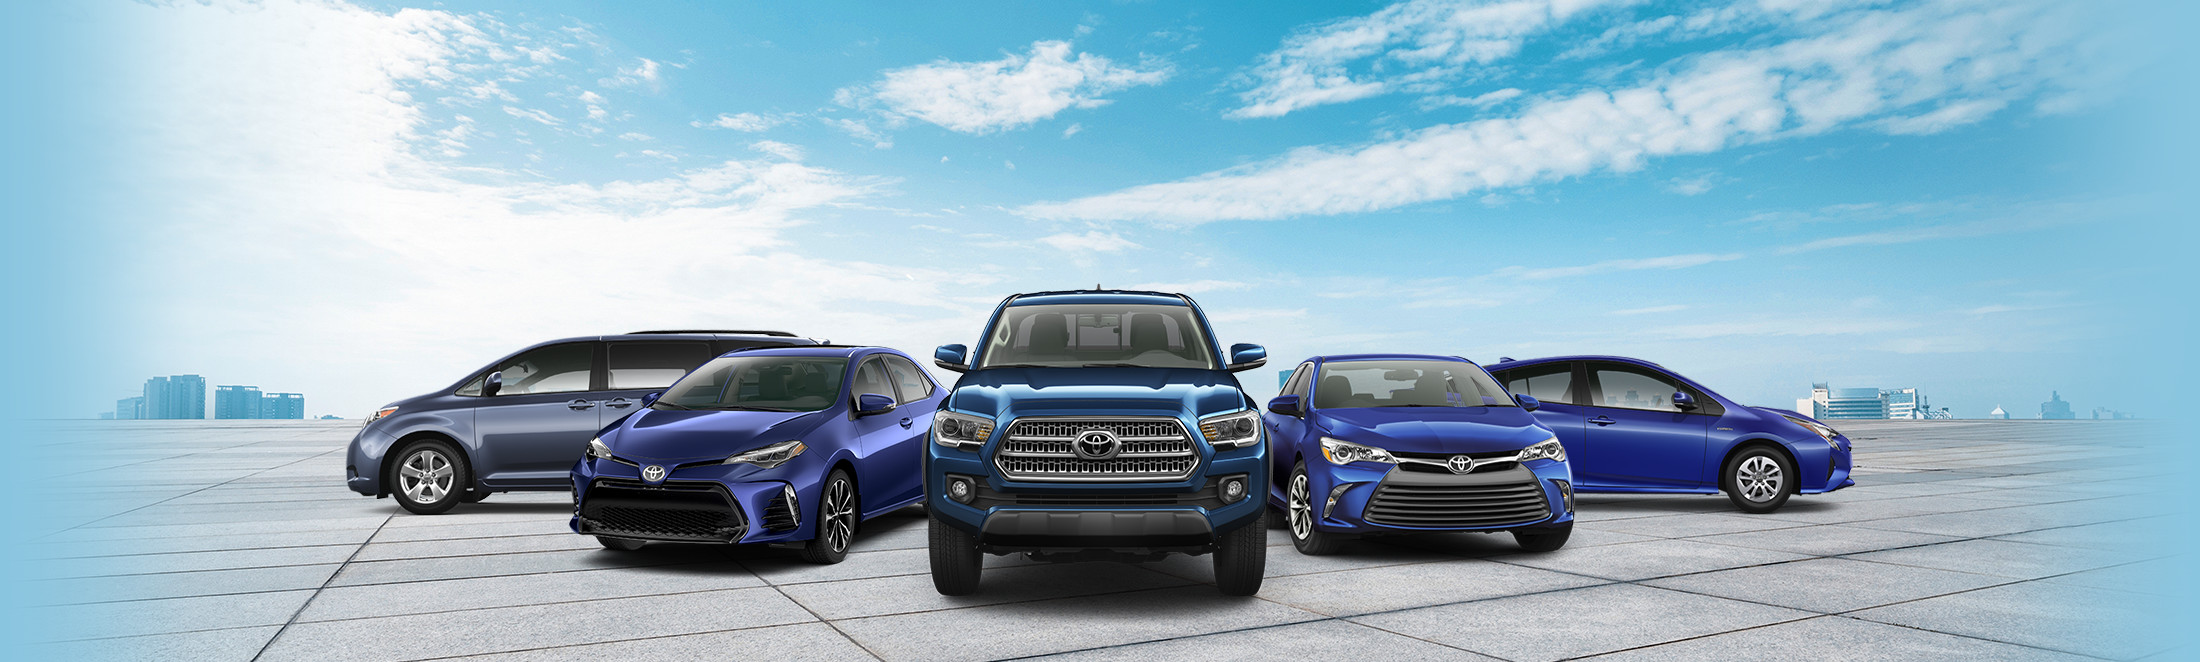 Toyota Fleet for your business